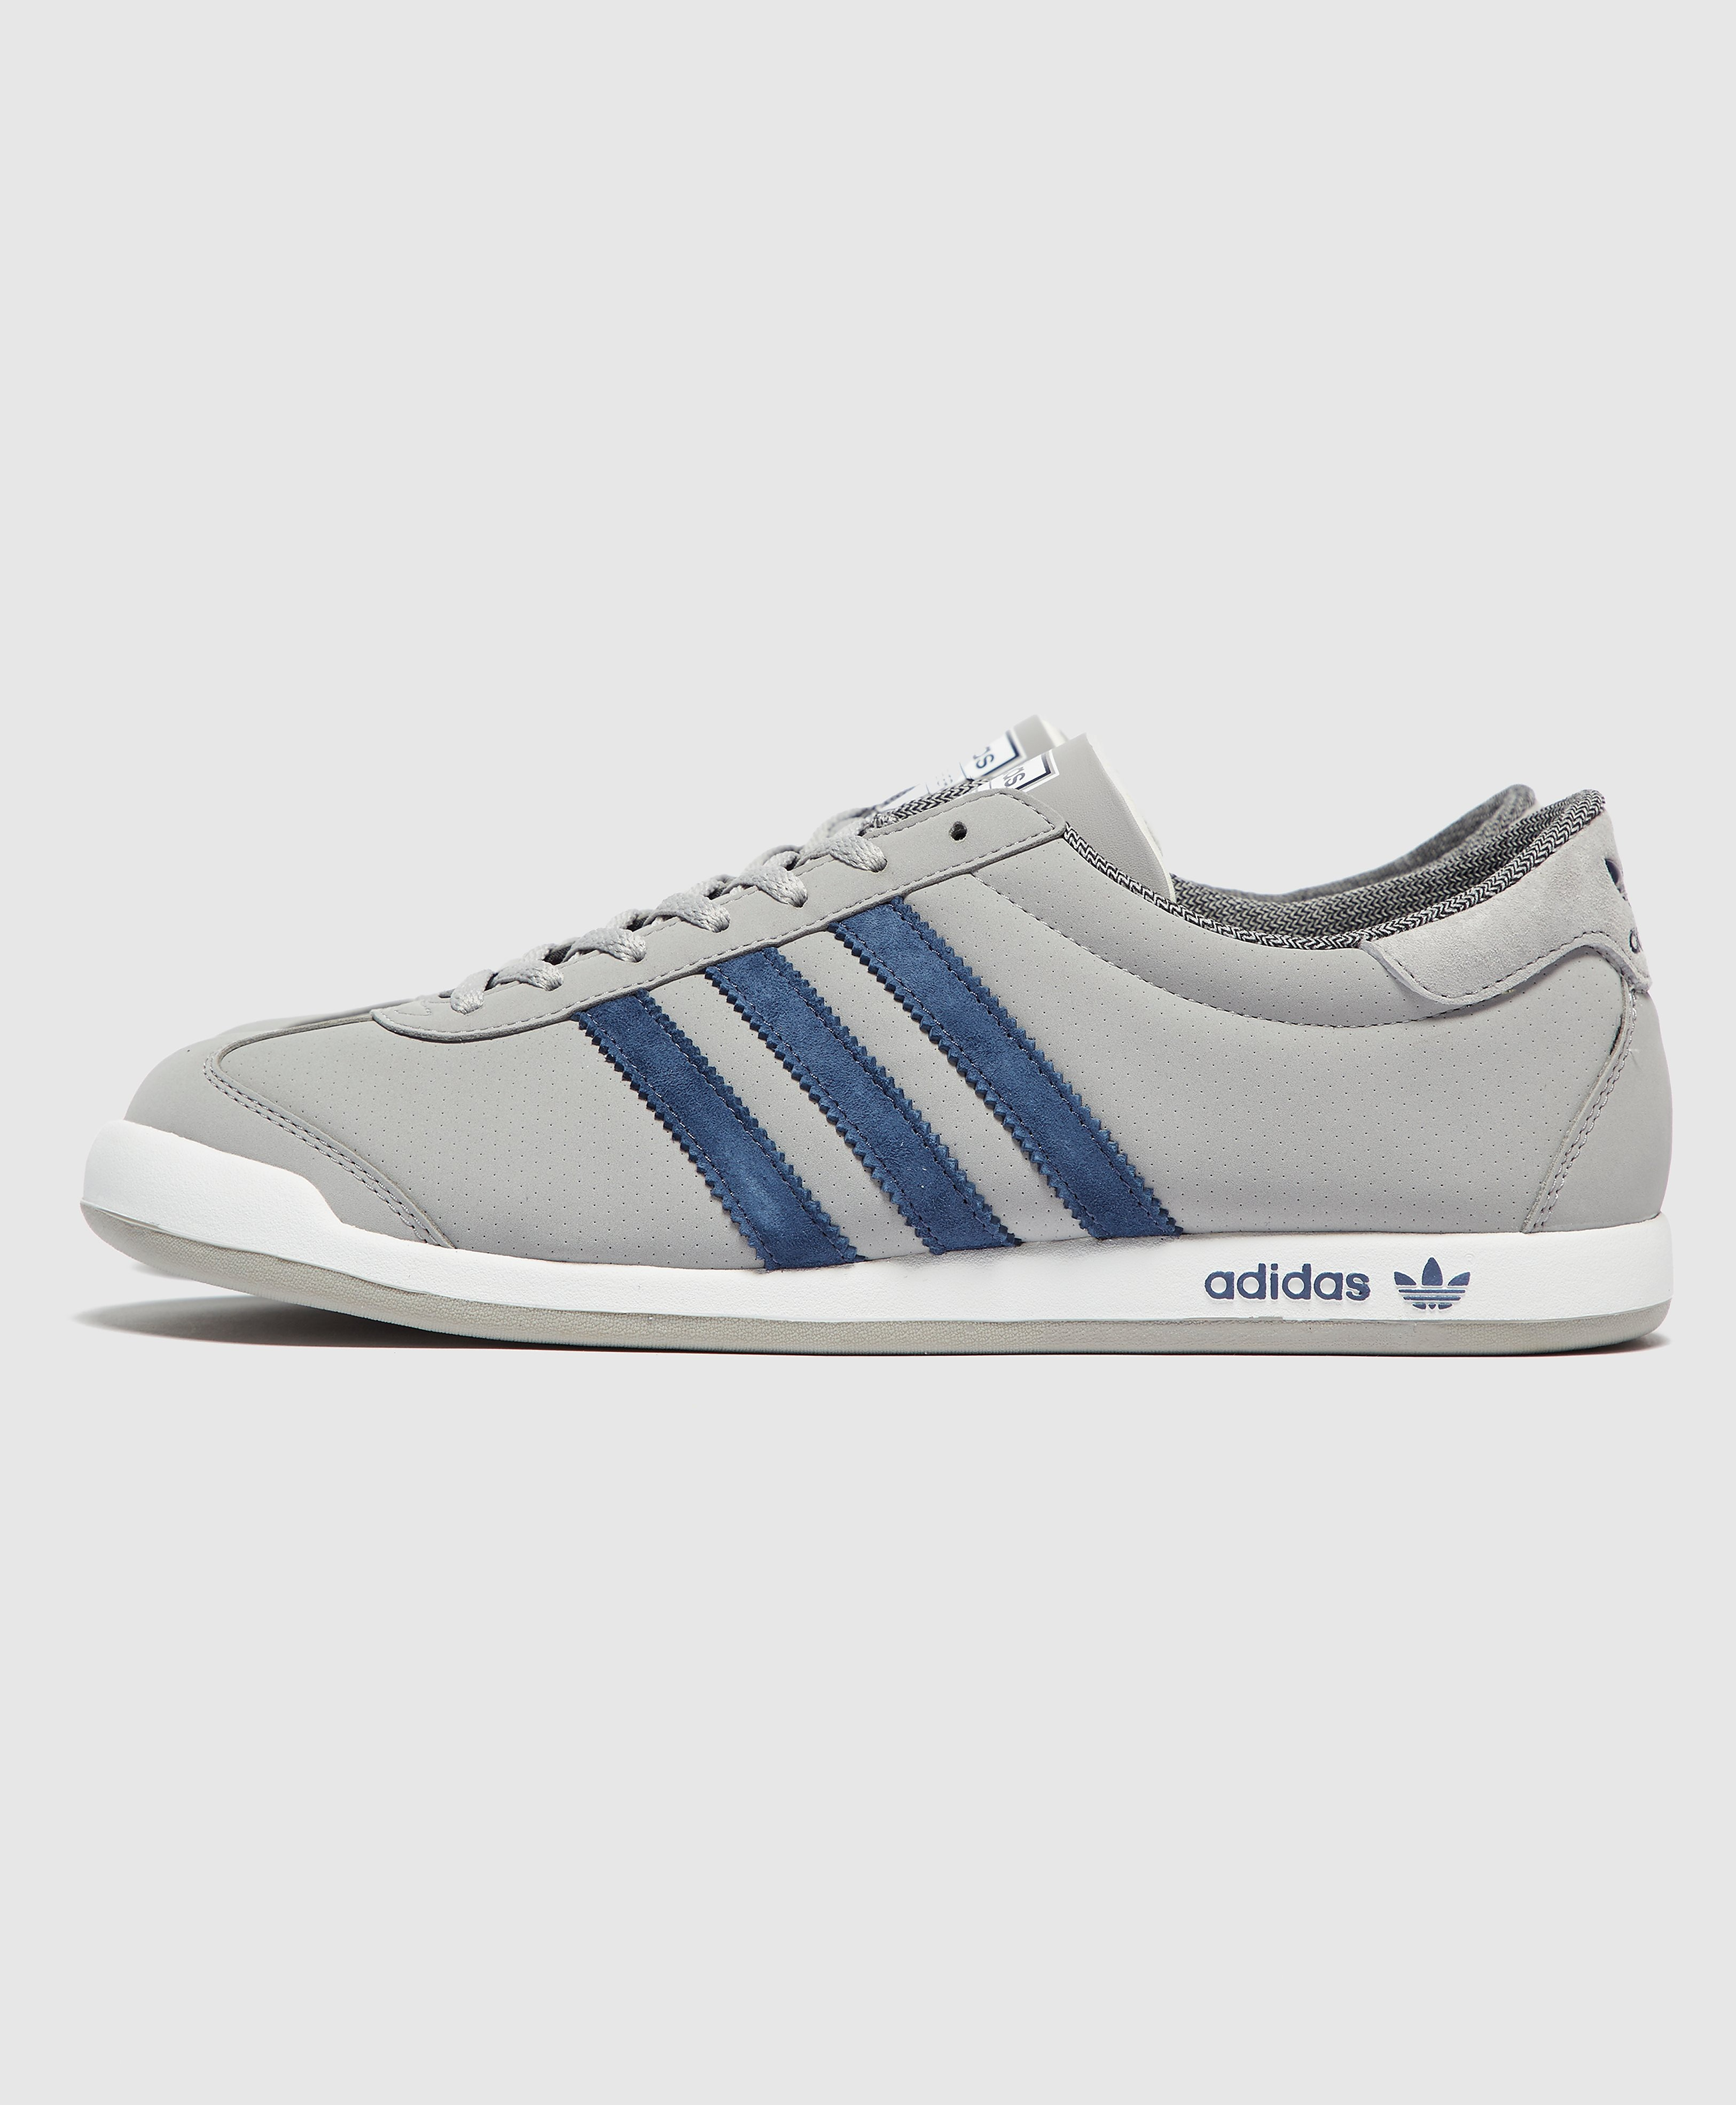 Adidas Originals Trainers Shoes Men S Footwear Scotts Menswear